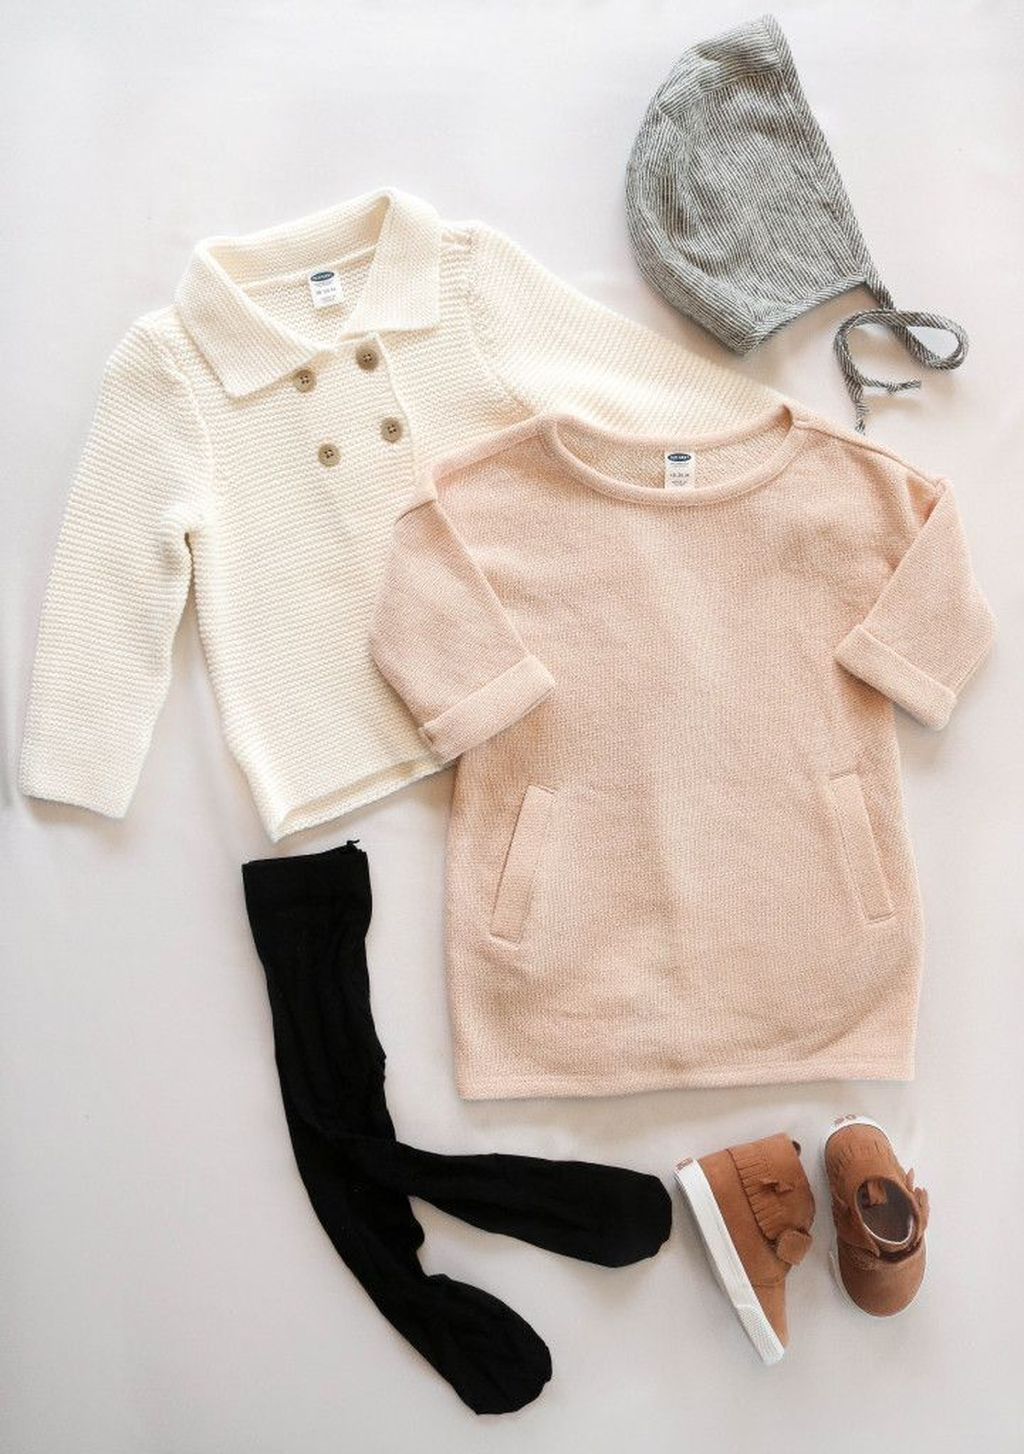 50c7bbabb Pin by Lauren Mccormac on Baby stuff | Fall baby clothes, Toddler ...